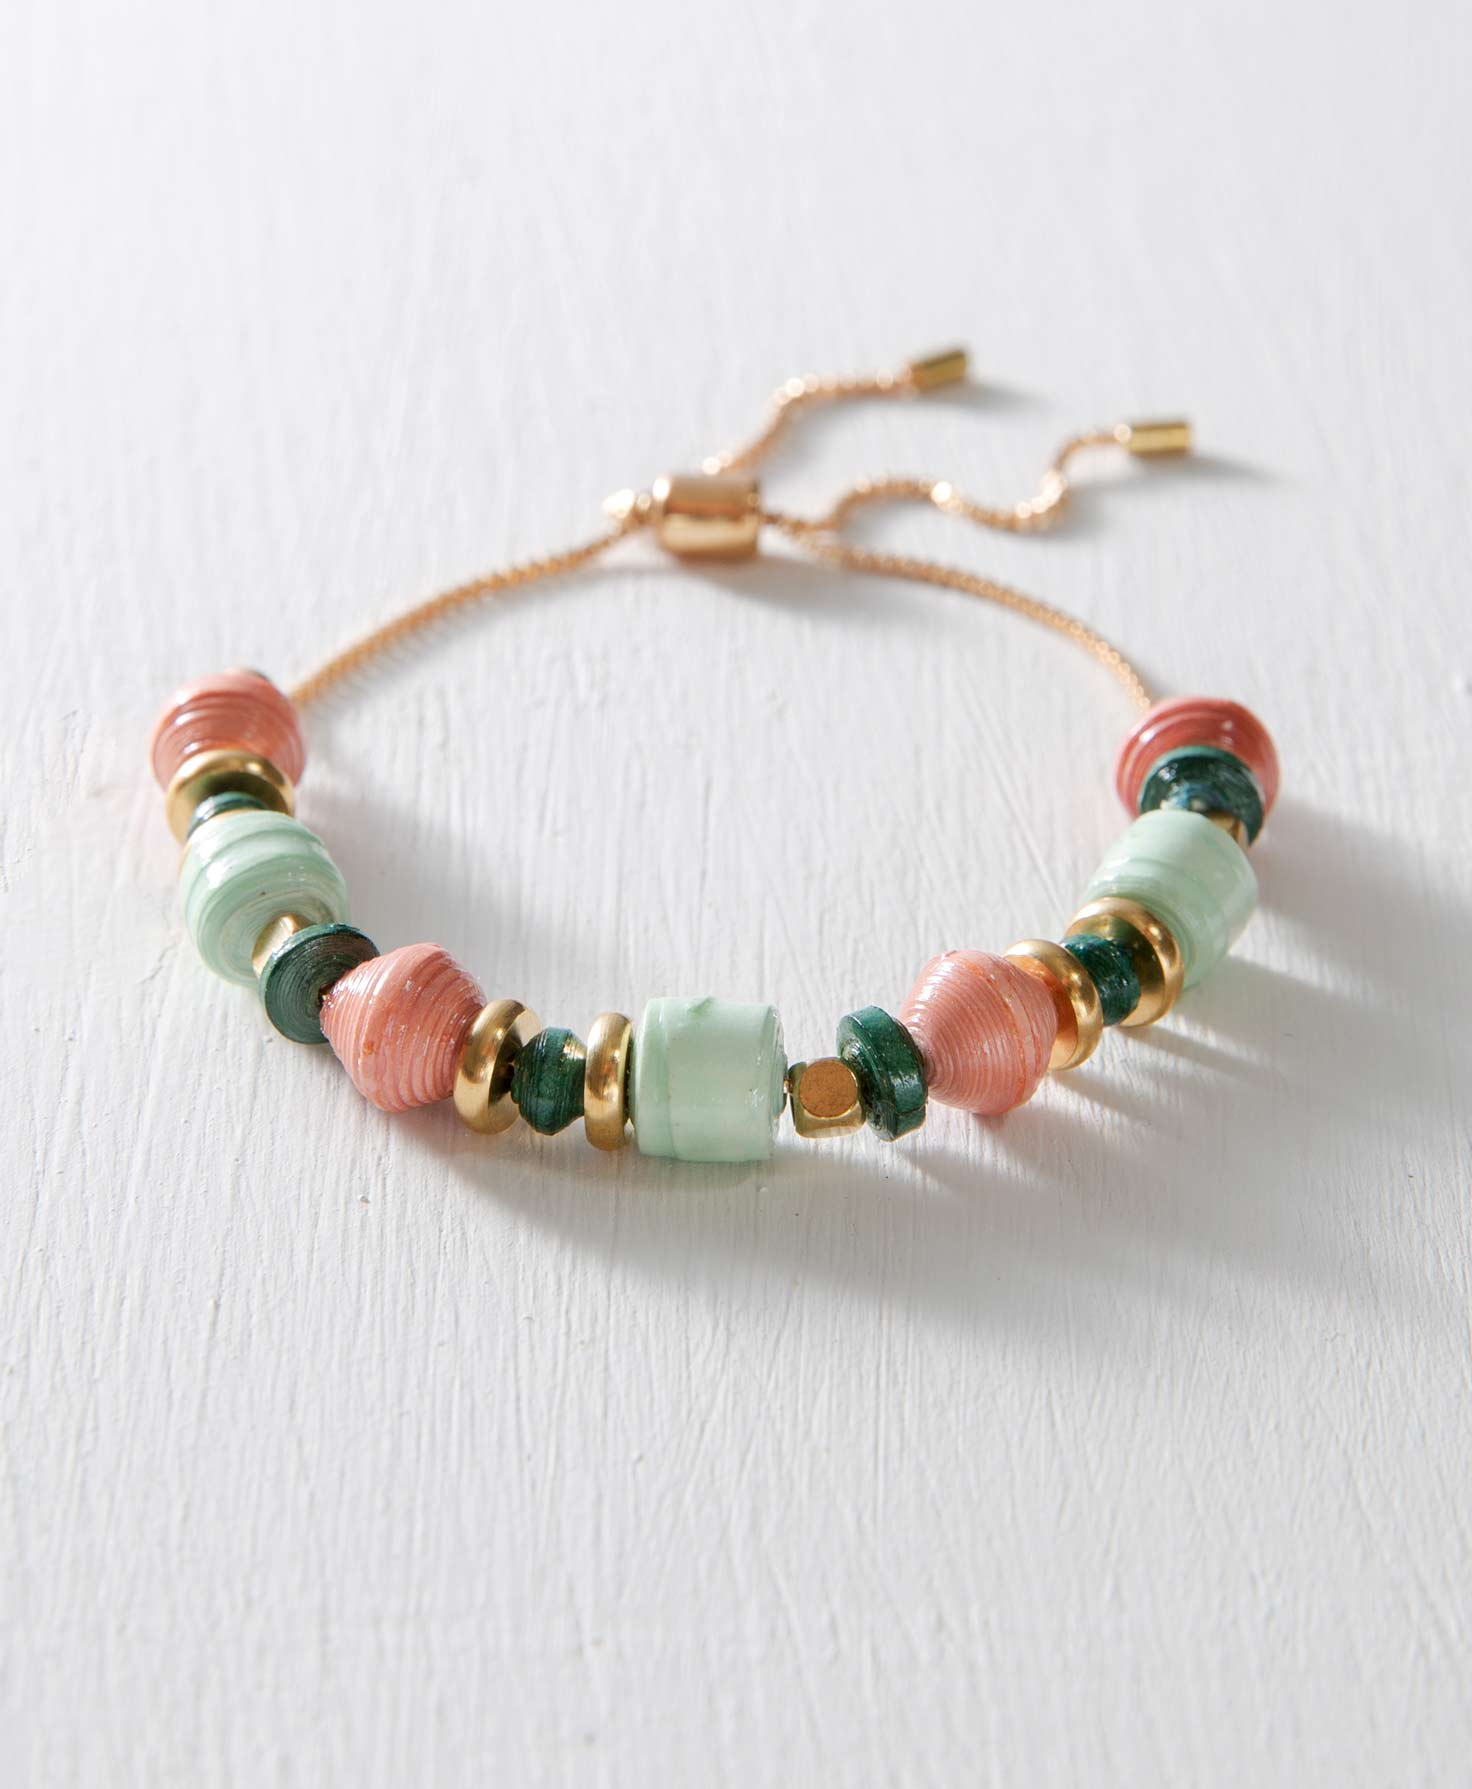 The Posy Bracelet features hand-rolled paper beads in light pink, mint green, and teal shades. Arranged in between the paper beads are cube-shaped brass beads and flat, circular brass beads. At the back of the bracelet, the beaded portion connects to a dainty brass chain with a brass bead. The chain can be adjusted for size by pulling on both ends of the chain.